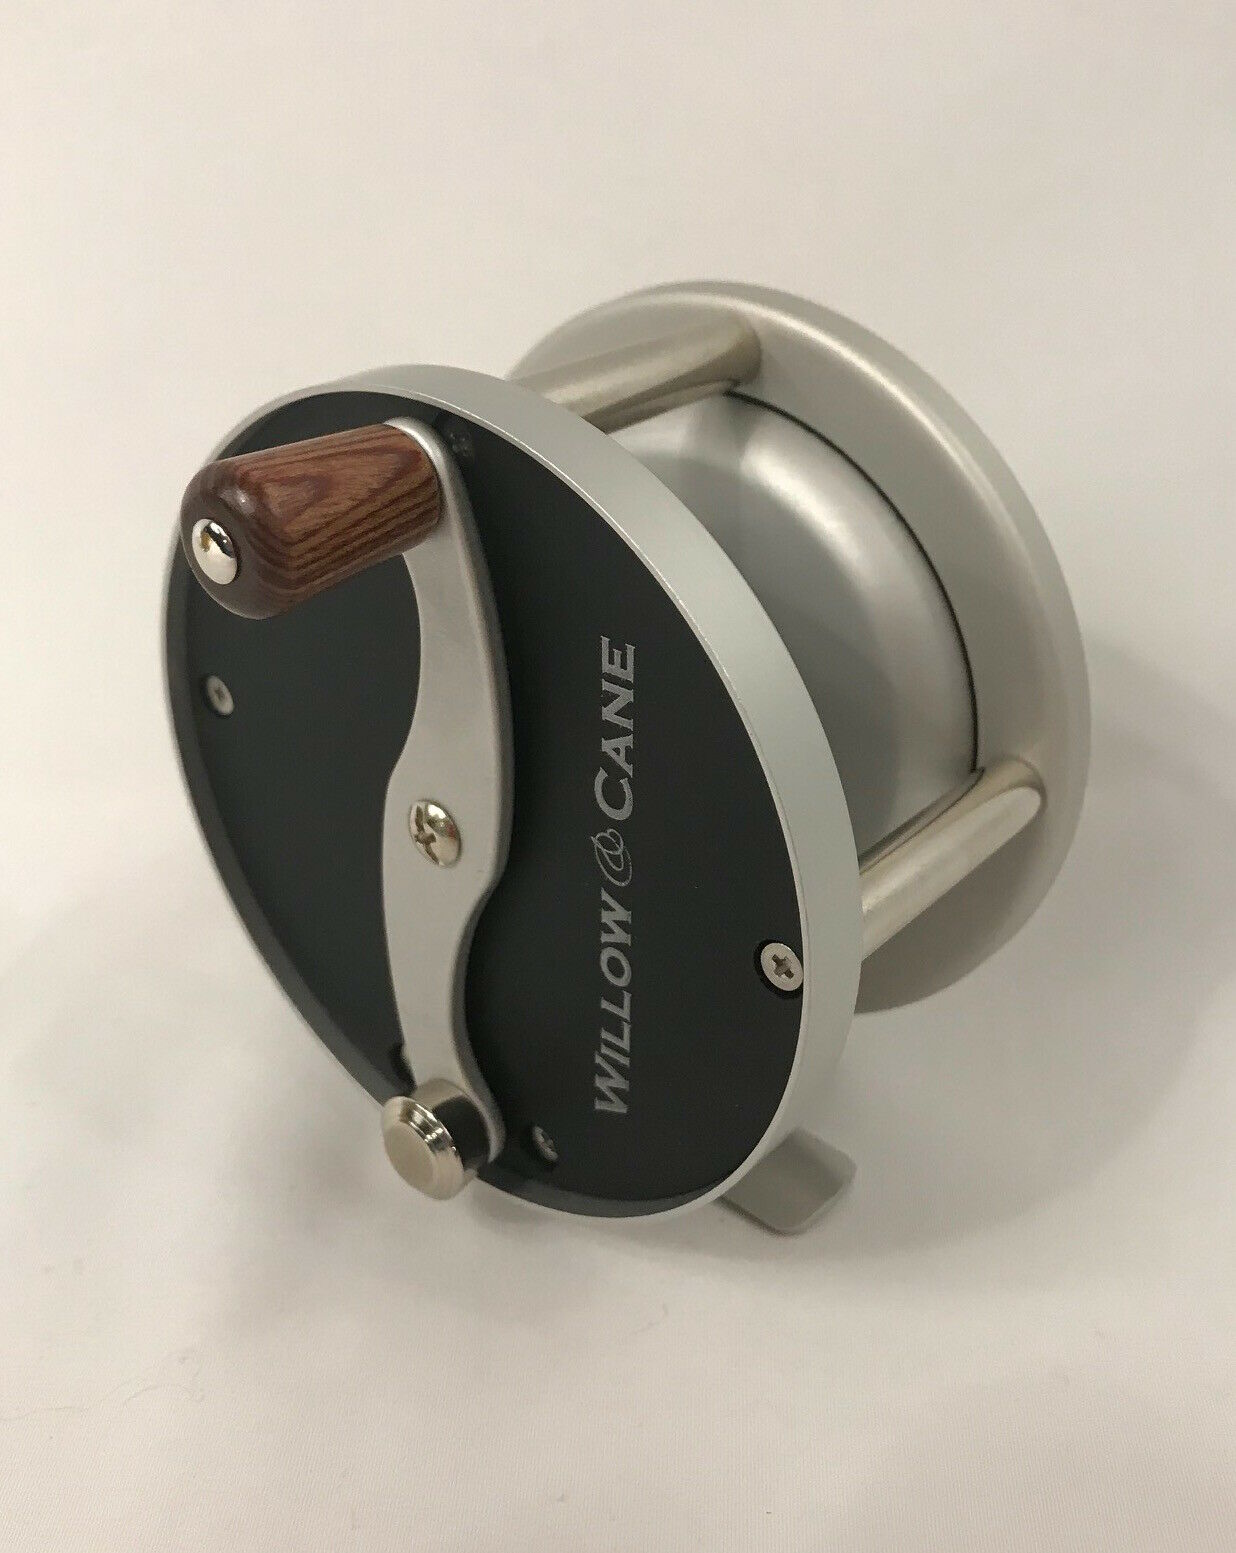 Classic Fly Fishing Reel - 5 wt NEW Heritage Series Willow And Cane